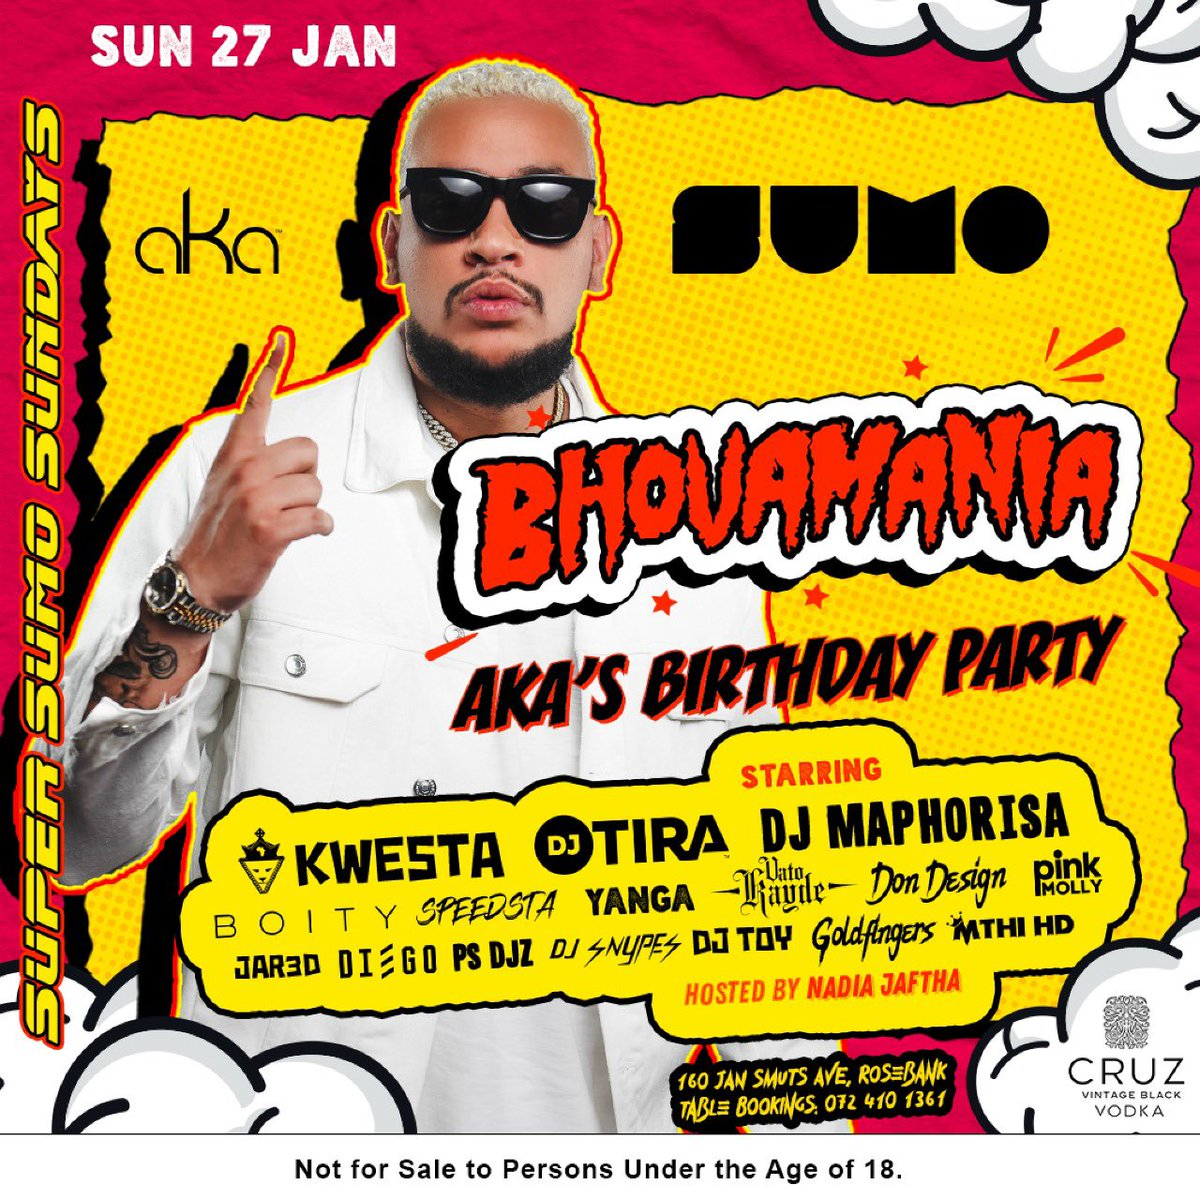 """We kick off """"BHOVAMANIA"""" throughout JAN/FEB at @KONG_urban NEXT SUNDAY as we celebrate Ⓜ️ORE LIFE 💸🎁 We have the MOST insane line up of BIG SHOTS 🔫💥 AND SUPASTARS ⭐️ DO NOT PLAY YOURSELF!!!! 🚀🚀"""